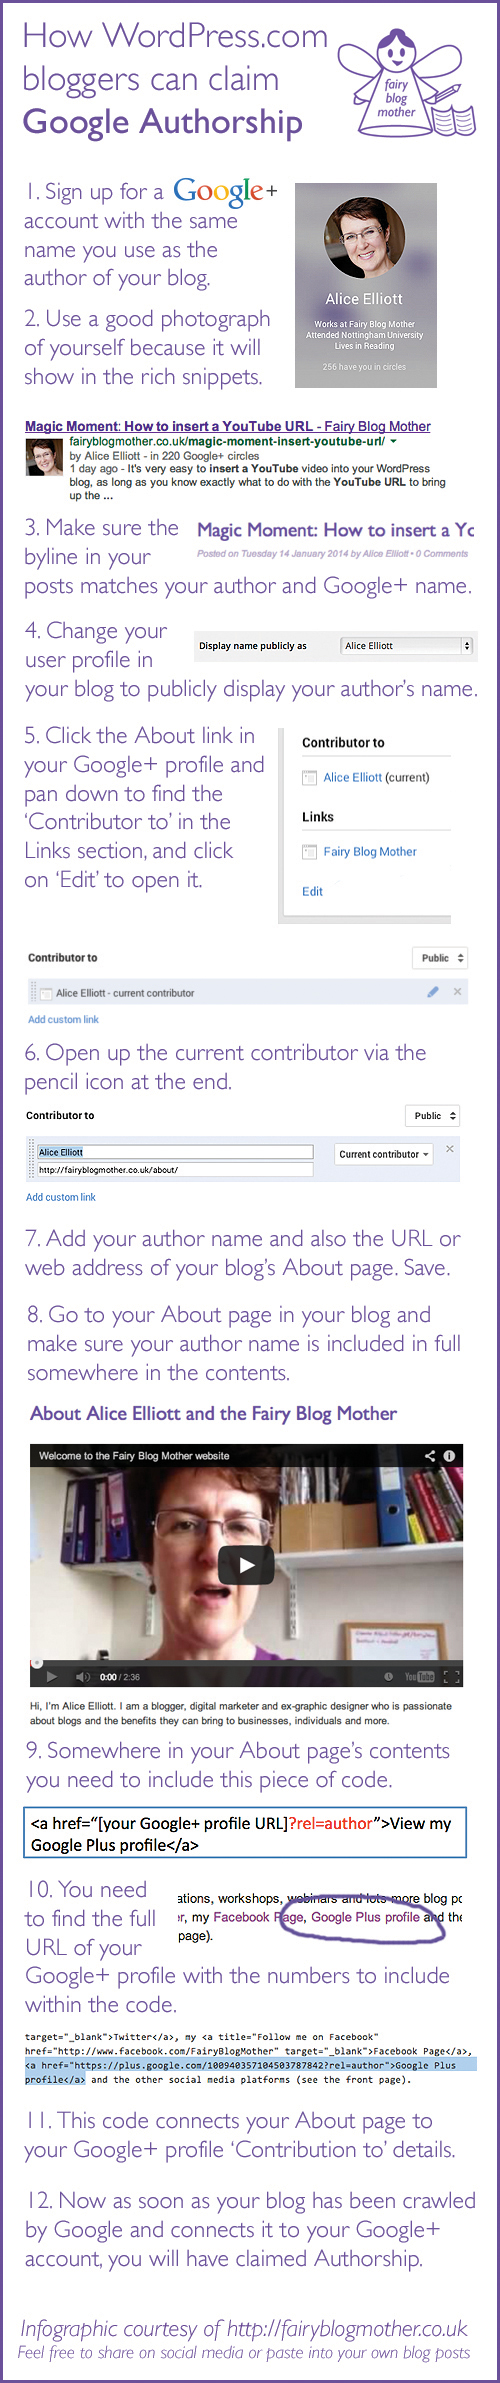 How to claim Google Authorship if you have a WordPress.com blog